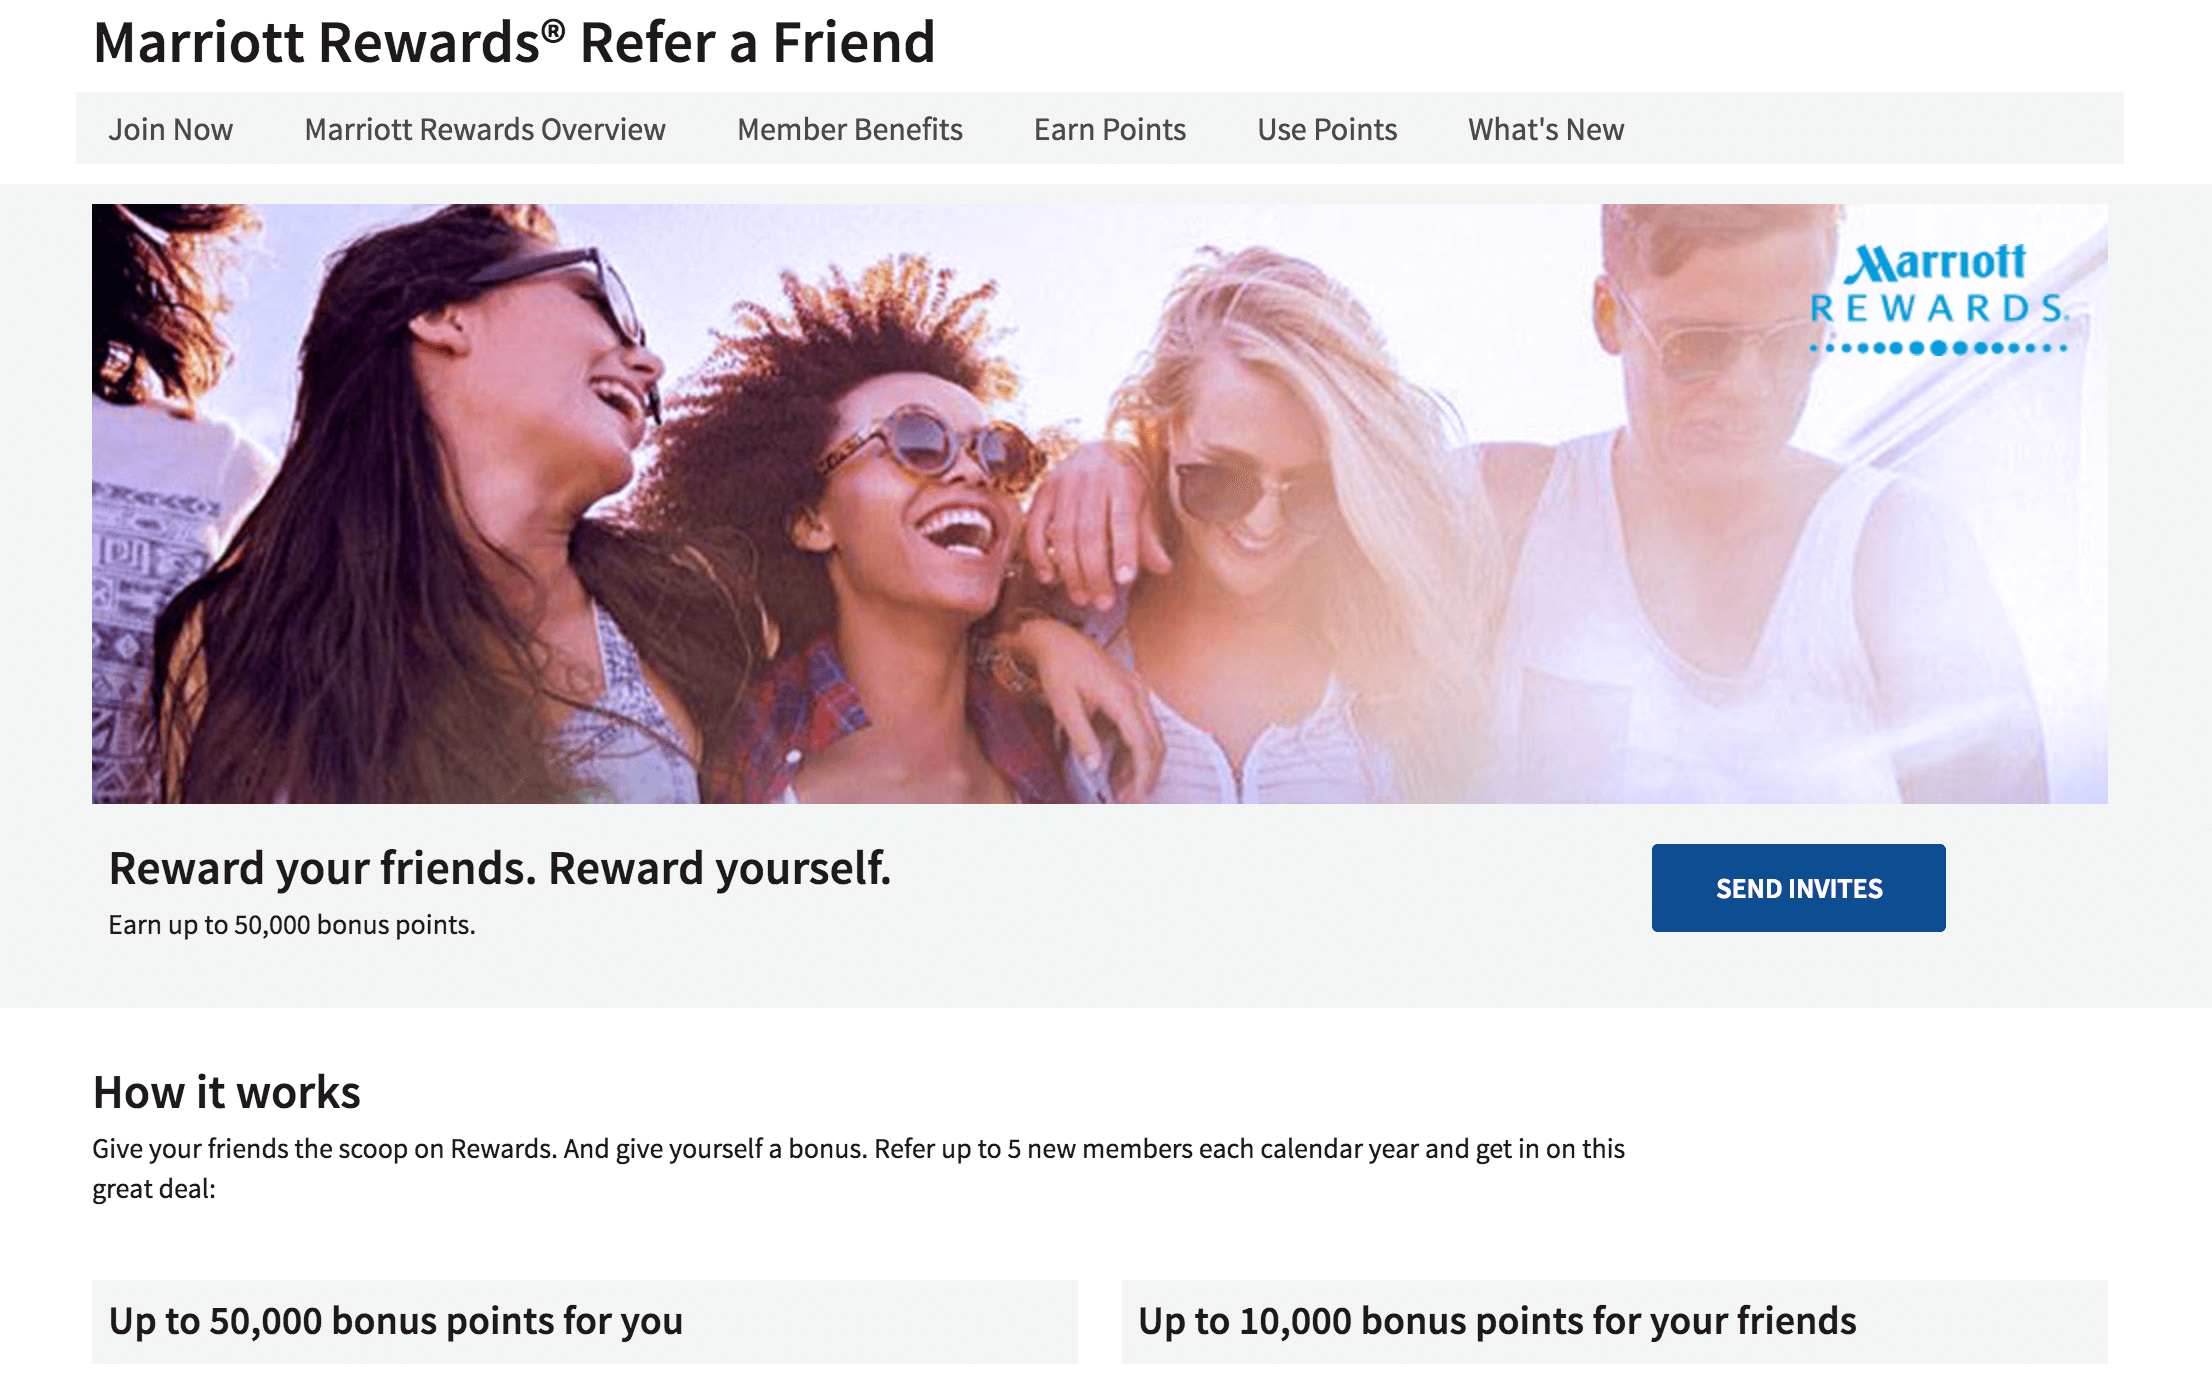 7-marriott-referral-program